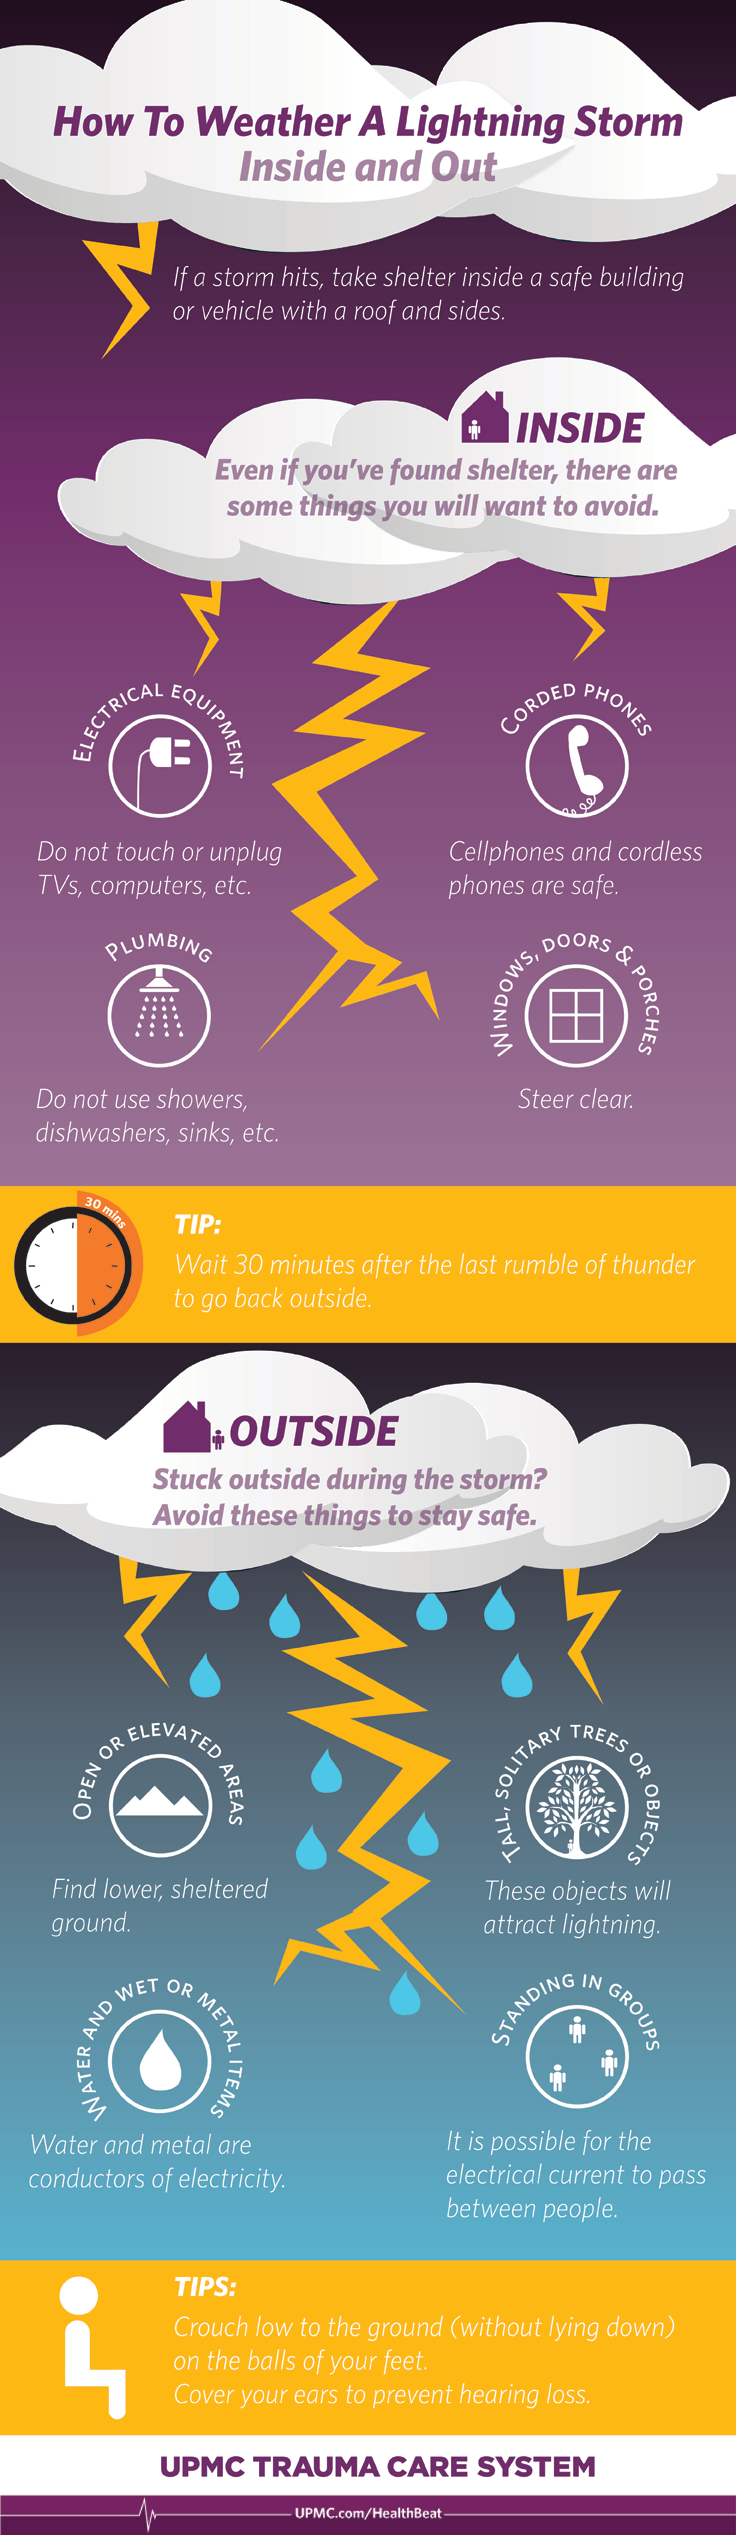 Tips for staying safe during a thunderstorm.